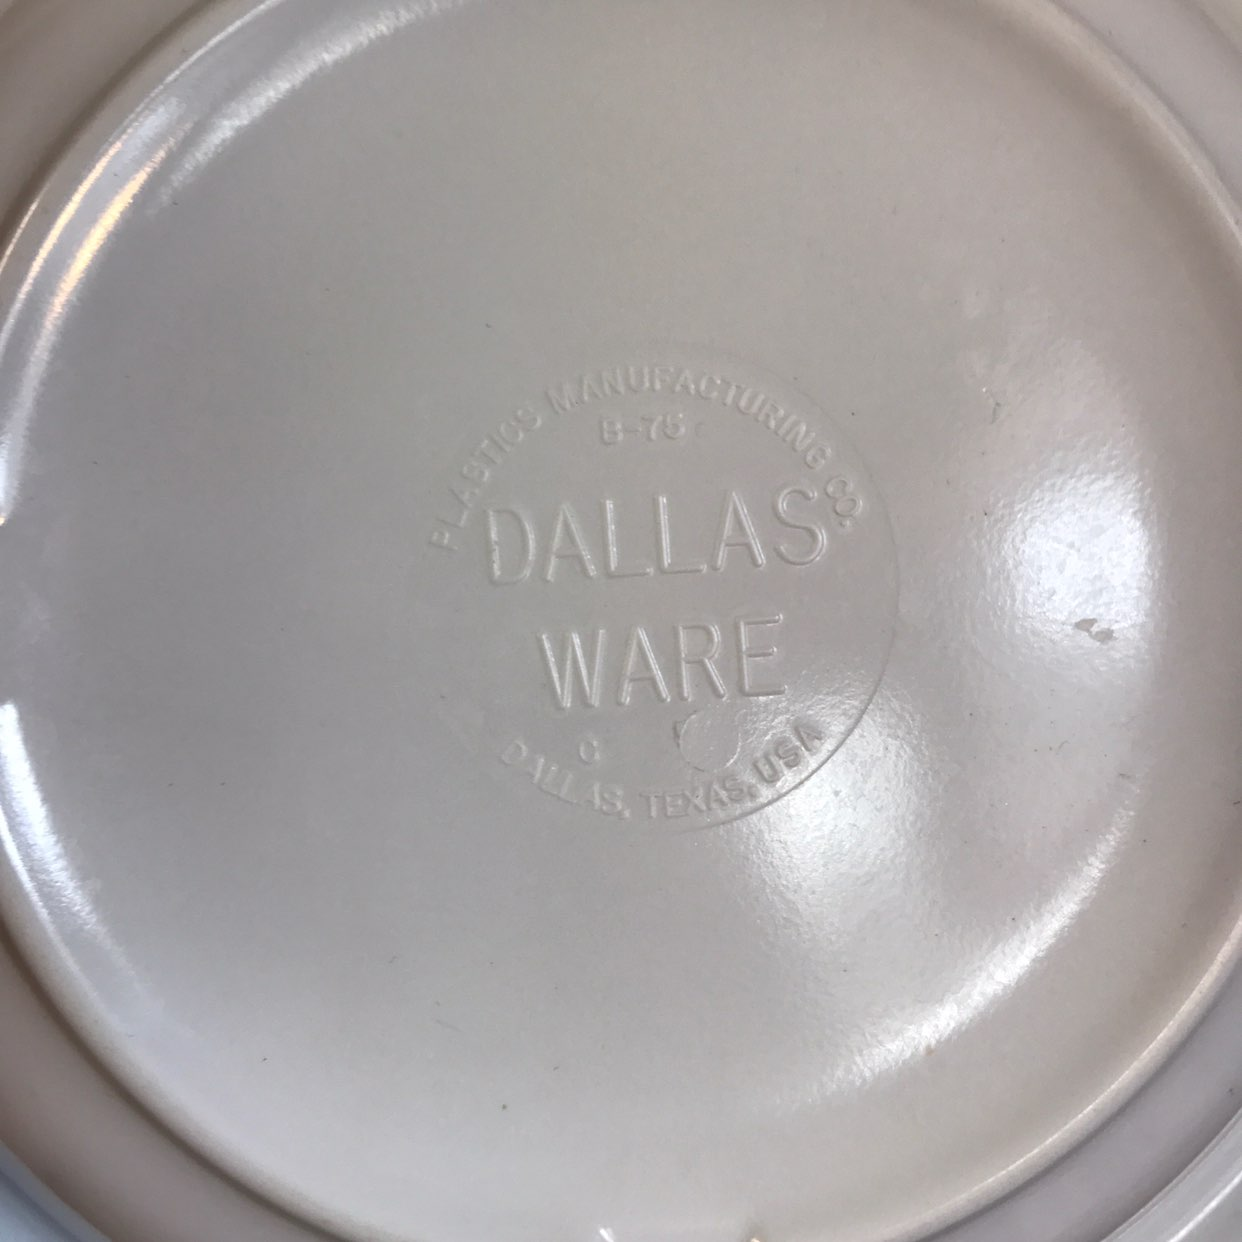 Set of 9 Dallas Ware Melamine Bowls